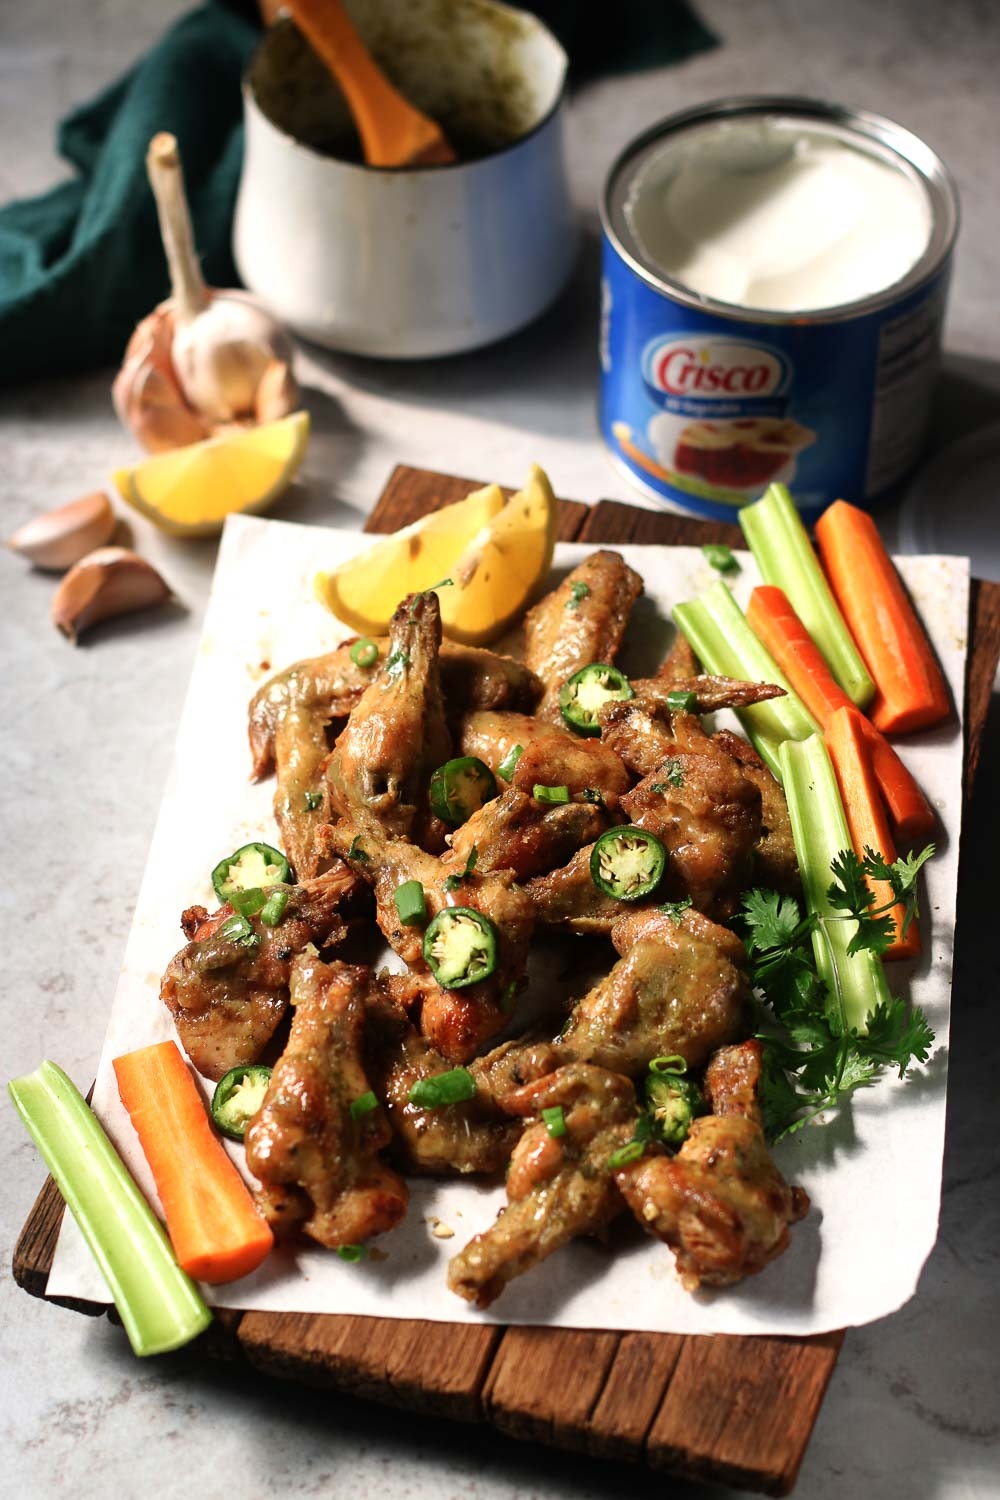 When it comes to these Vietnamese crispy chicken wings, you won't be able to stop at one. Crunchy on the outside covered with delicious Vietnamese-inspired sauce, these are perfect party food for a crowd or even a family meal.